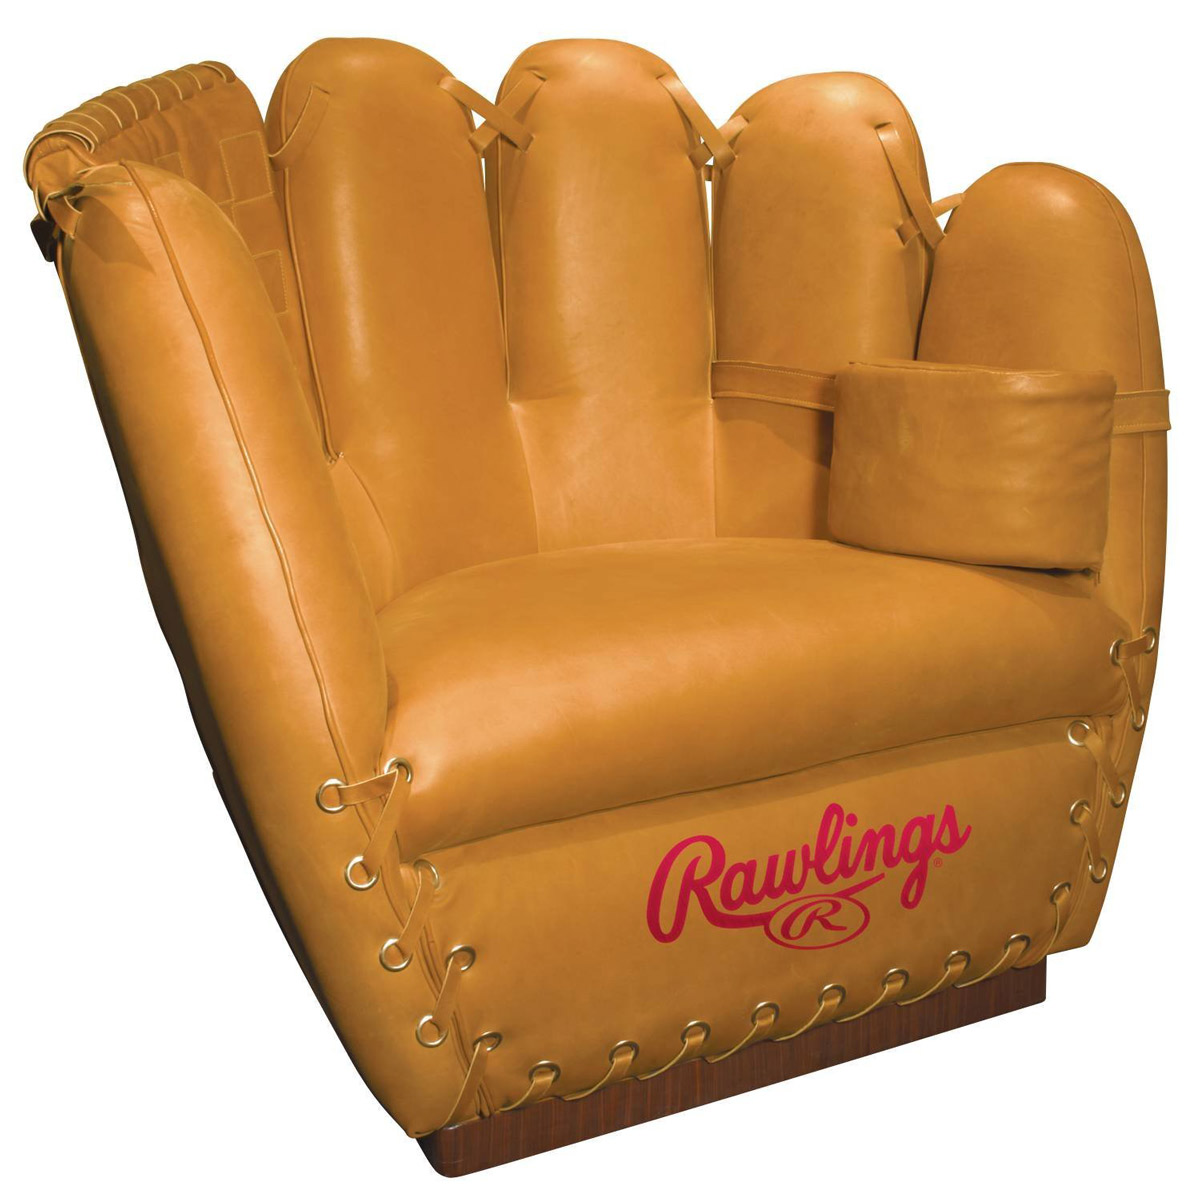 Rawlings leather baseball glove chair the green head Baseball sofa